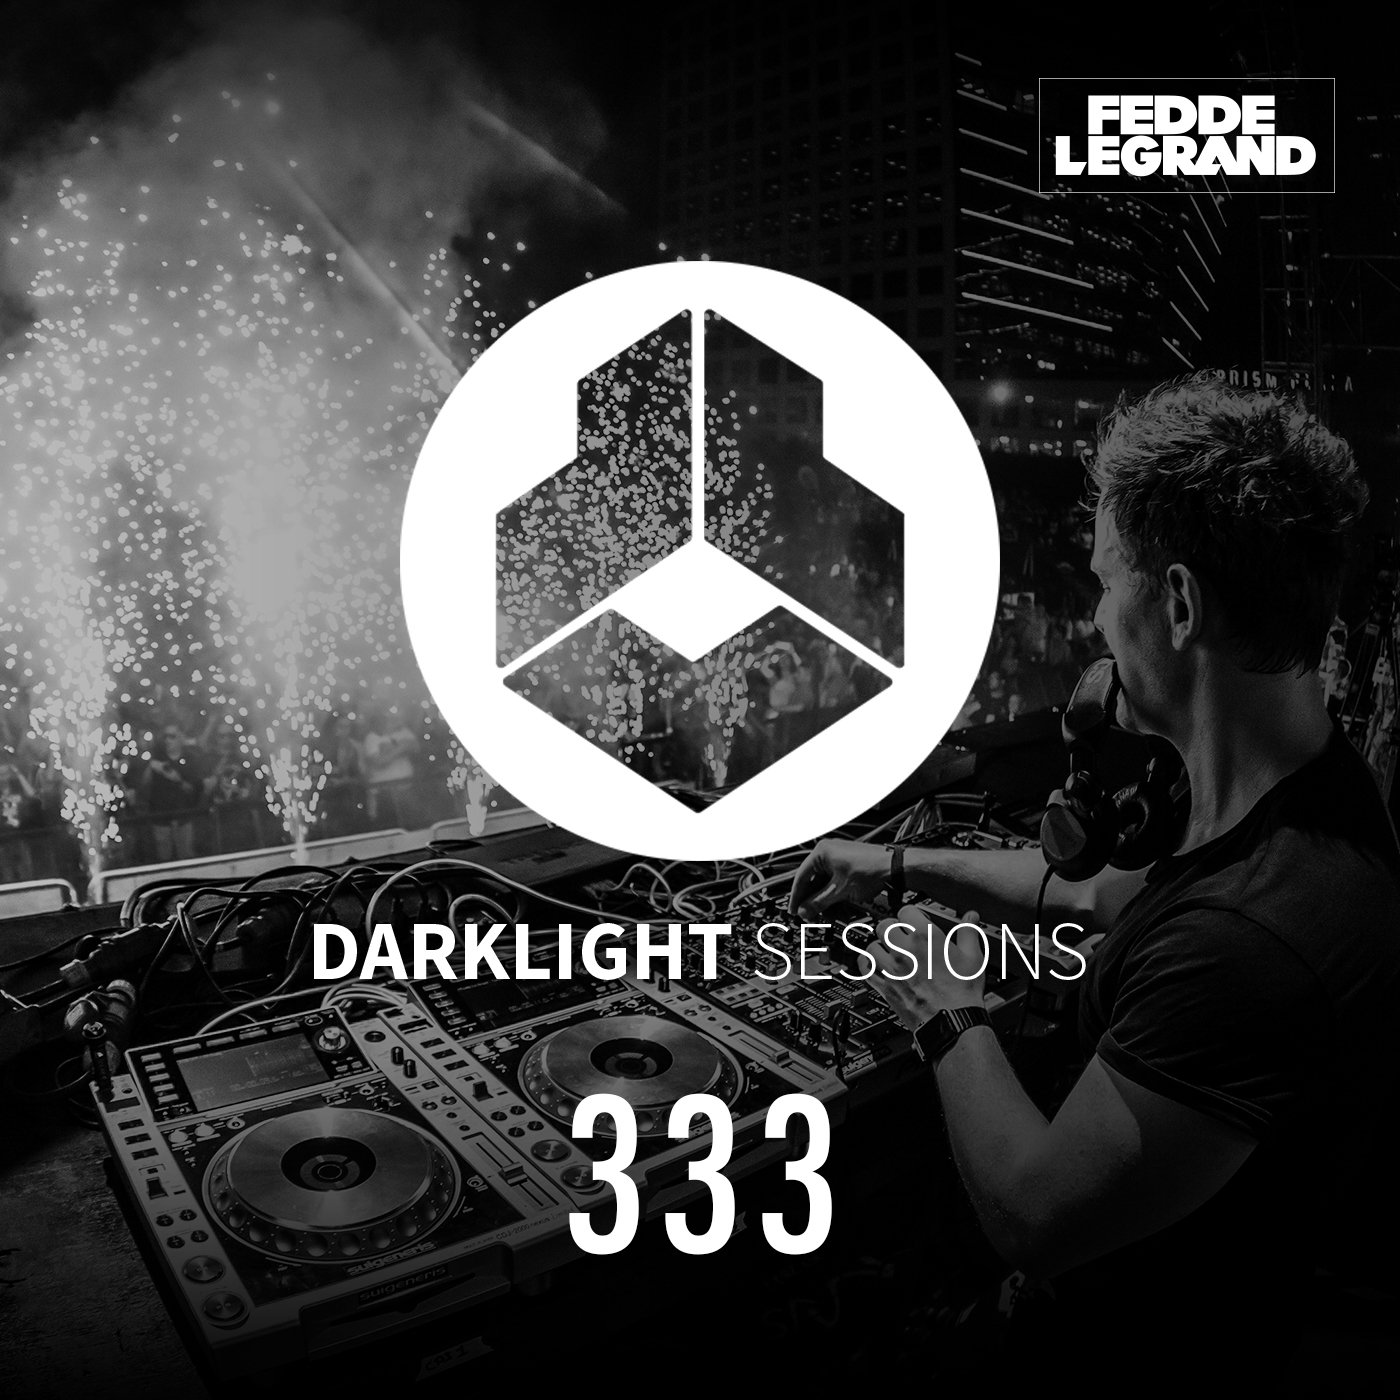 Darklight Sessions 333